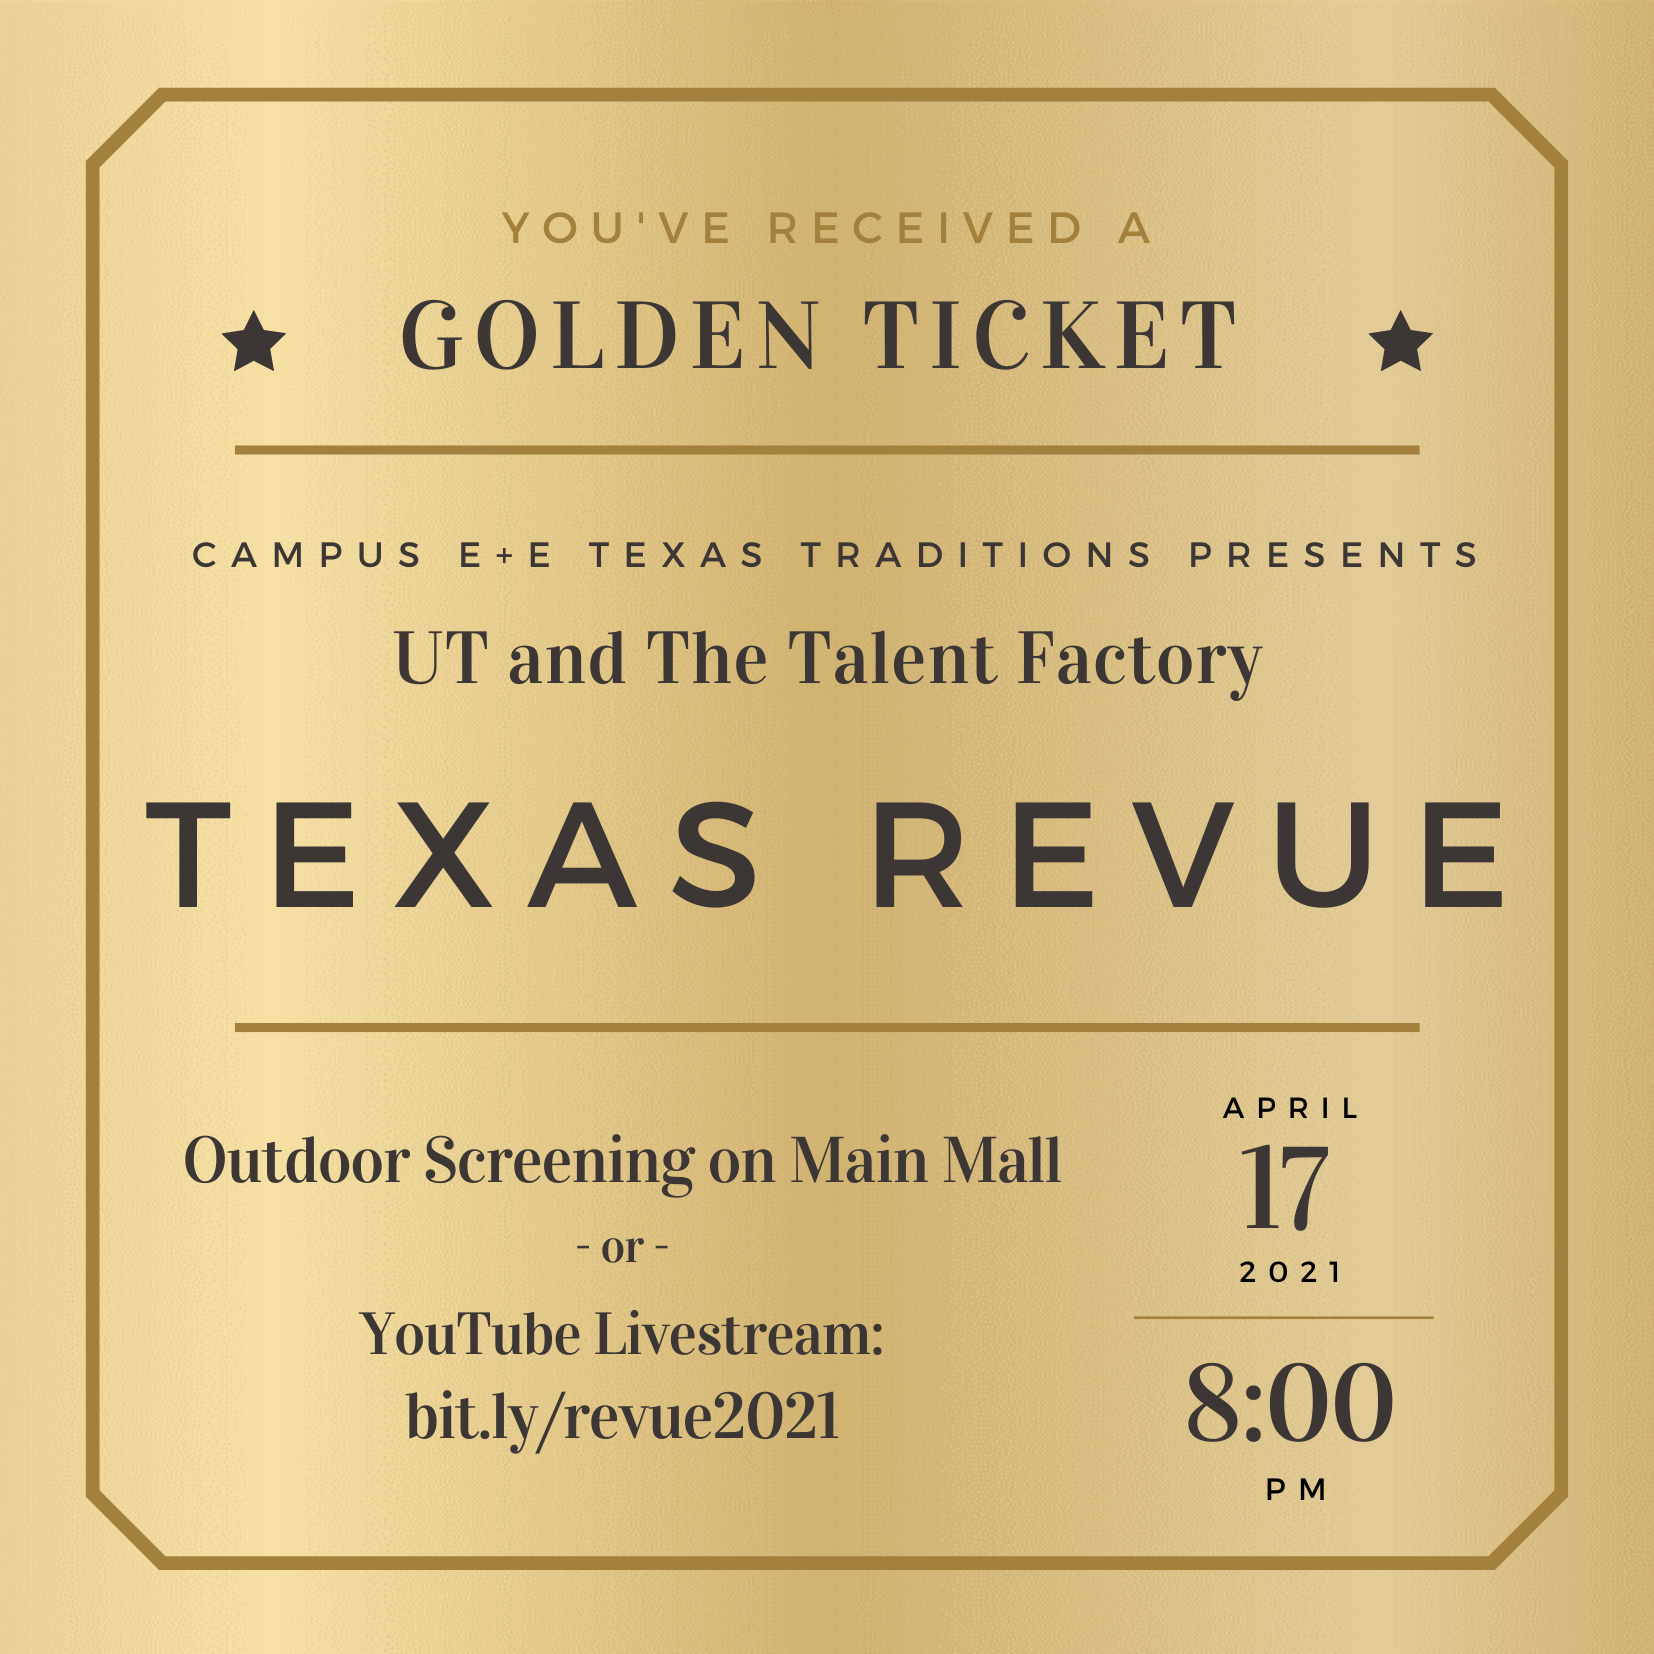 Image advertising Texas Revue on April 17